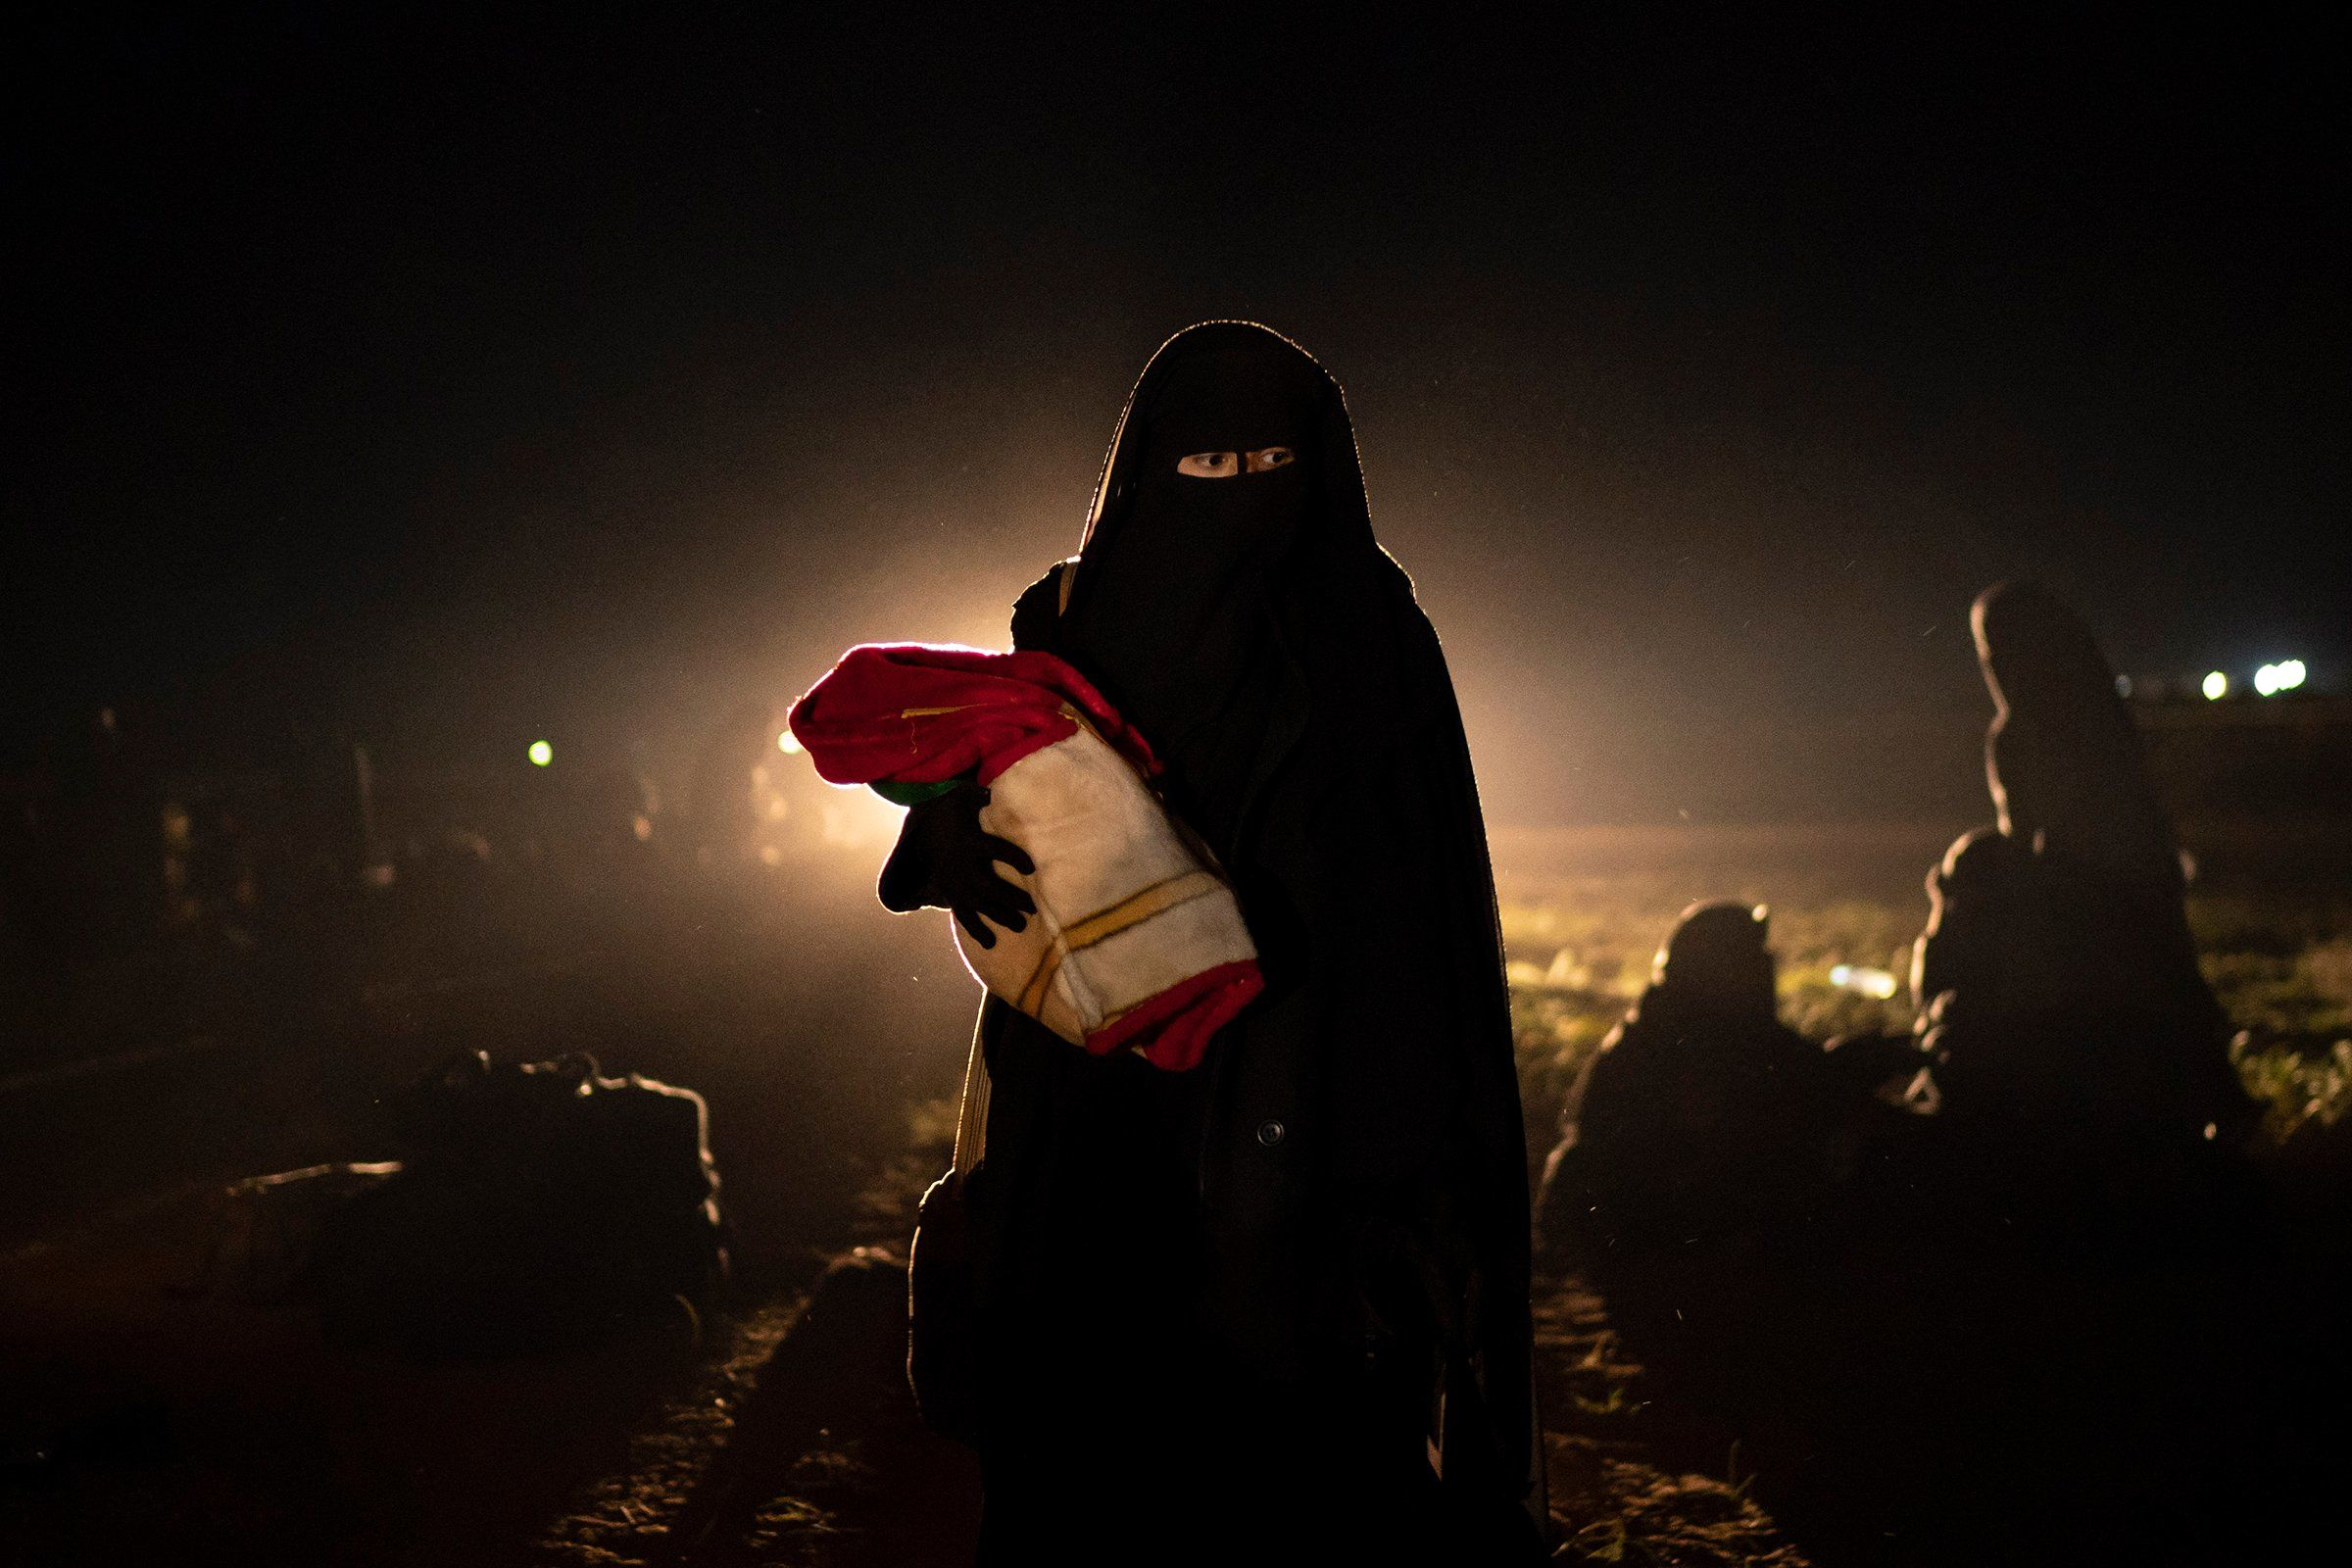 In the Syrian desert outside Baghouz, a woman resumes her journey after being screened by the U.S.-backed Syrian Democratic Forces on Feb. 25. She and her infant were among hundreds of civilians in a series of mass evacuations from the last sliver of the country's territory still held by ISIS.